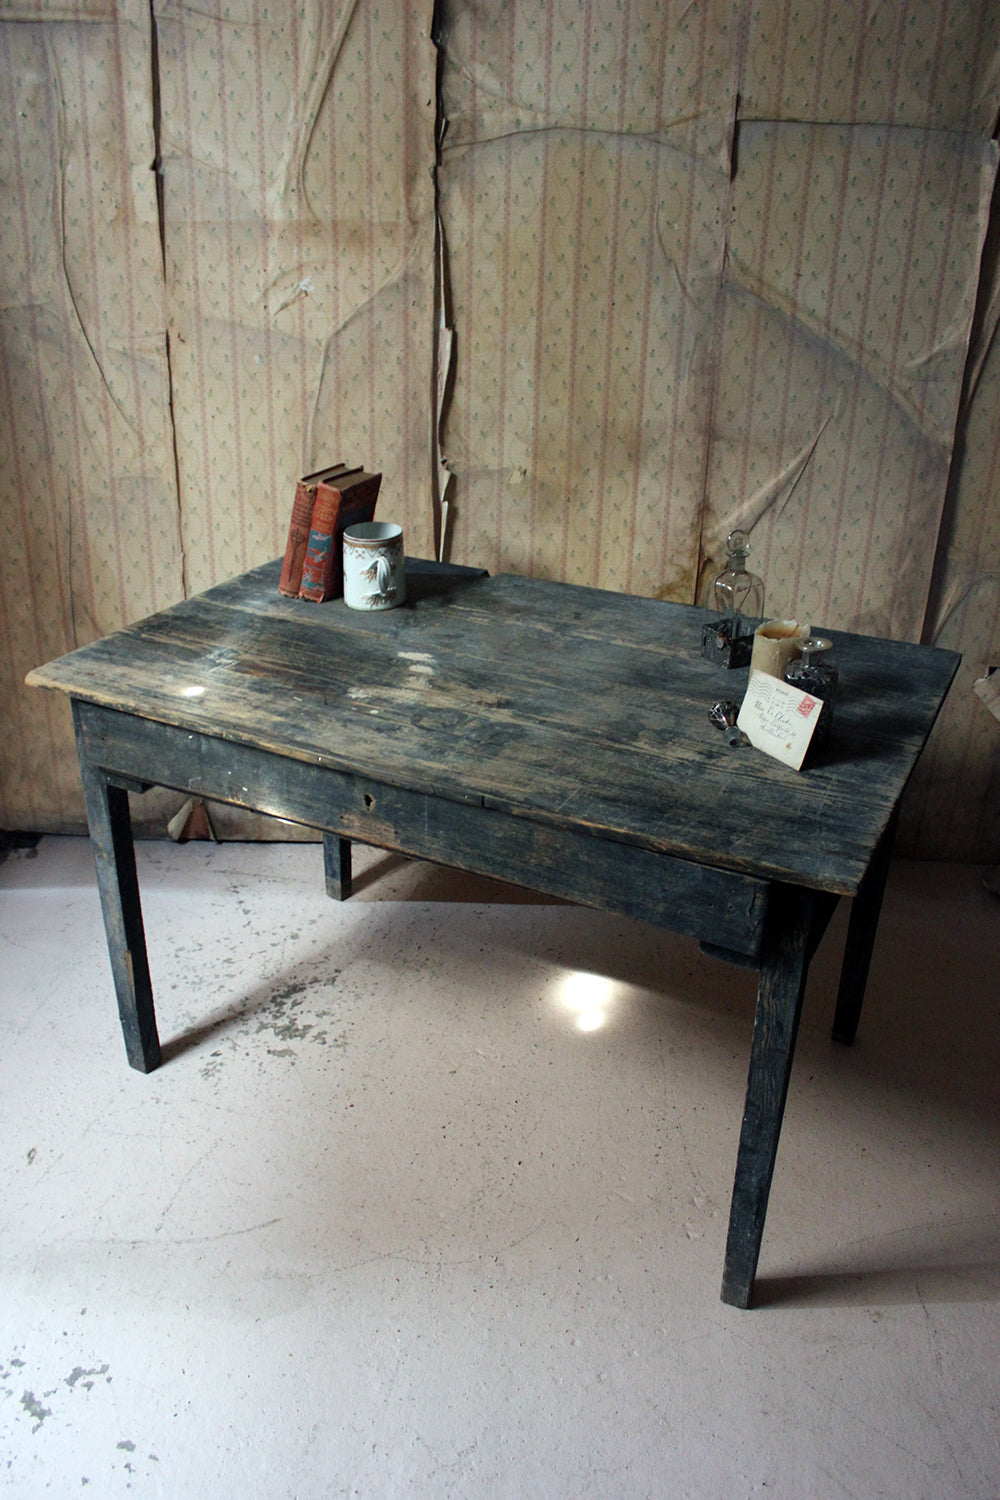 A Rustic Provincial Black Painted French Pine Farmhouse Table c.1900